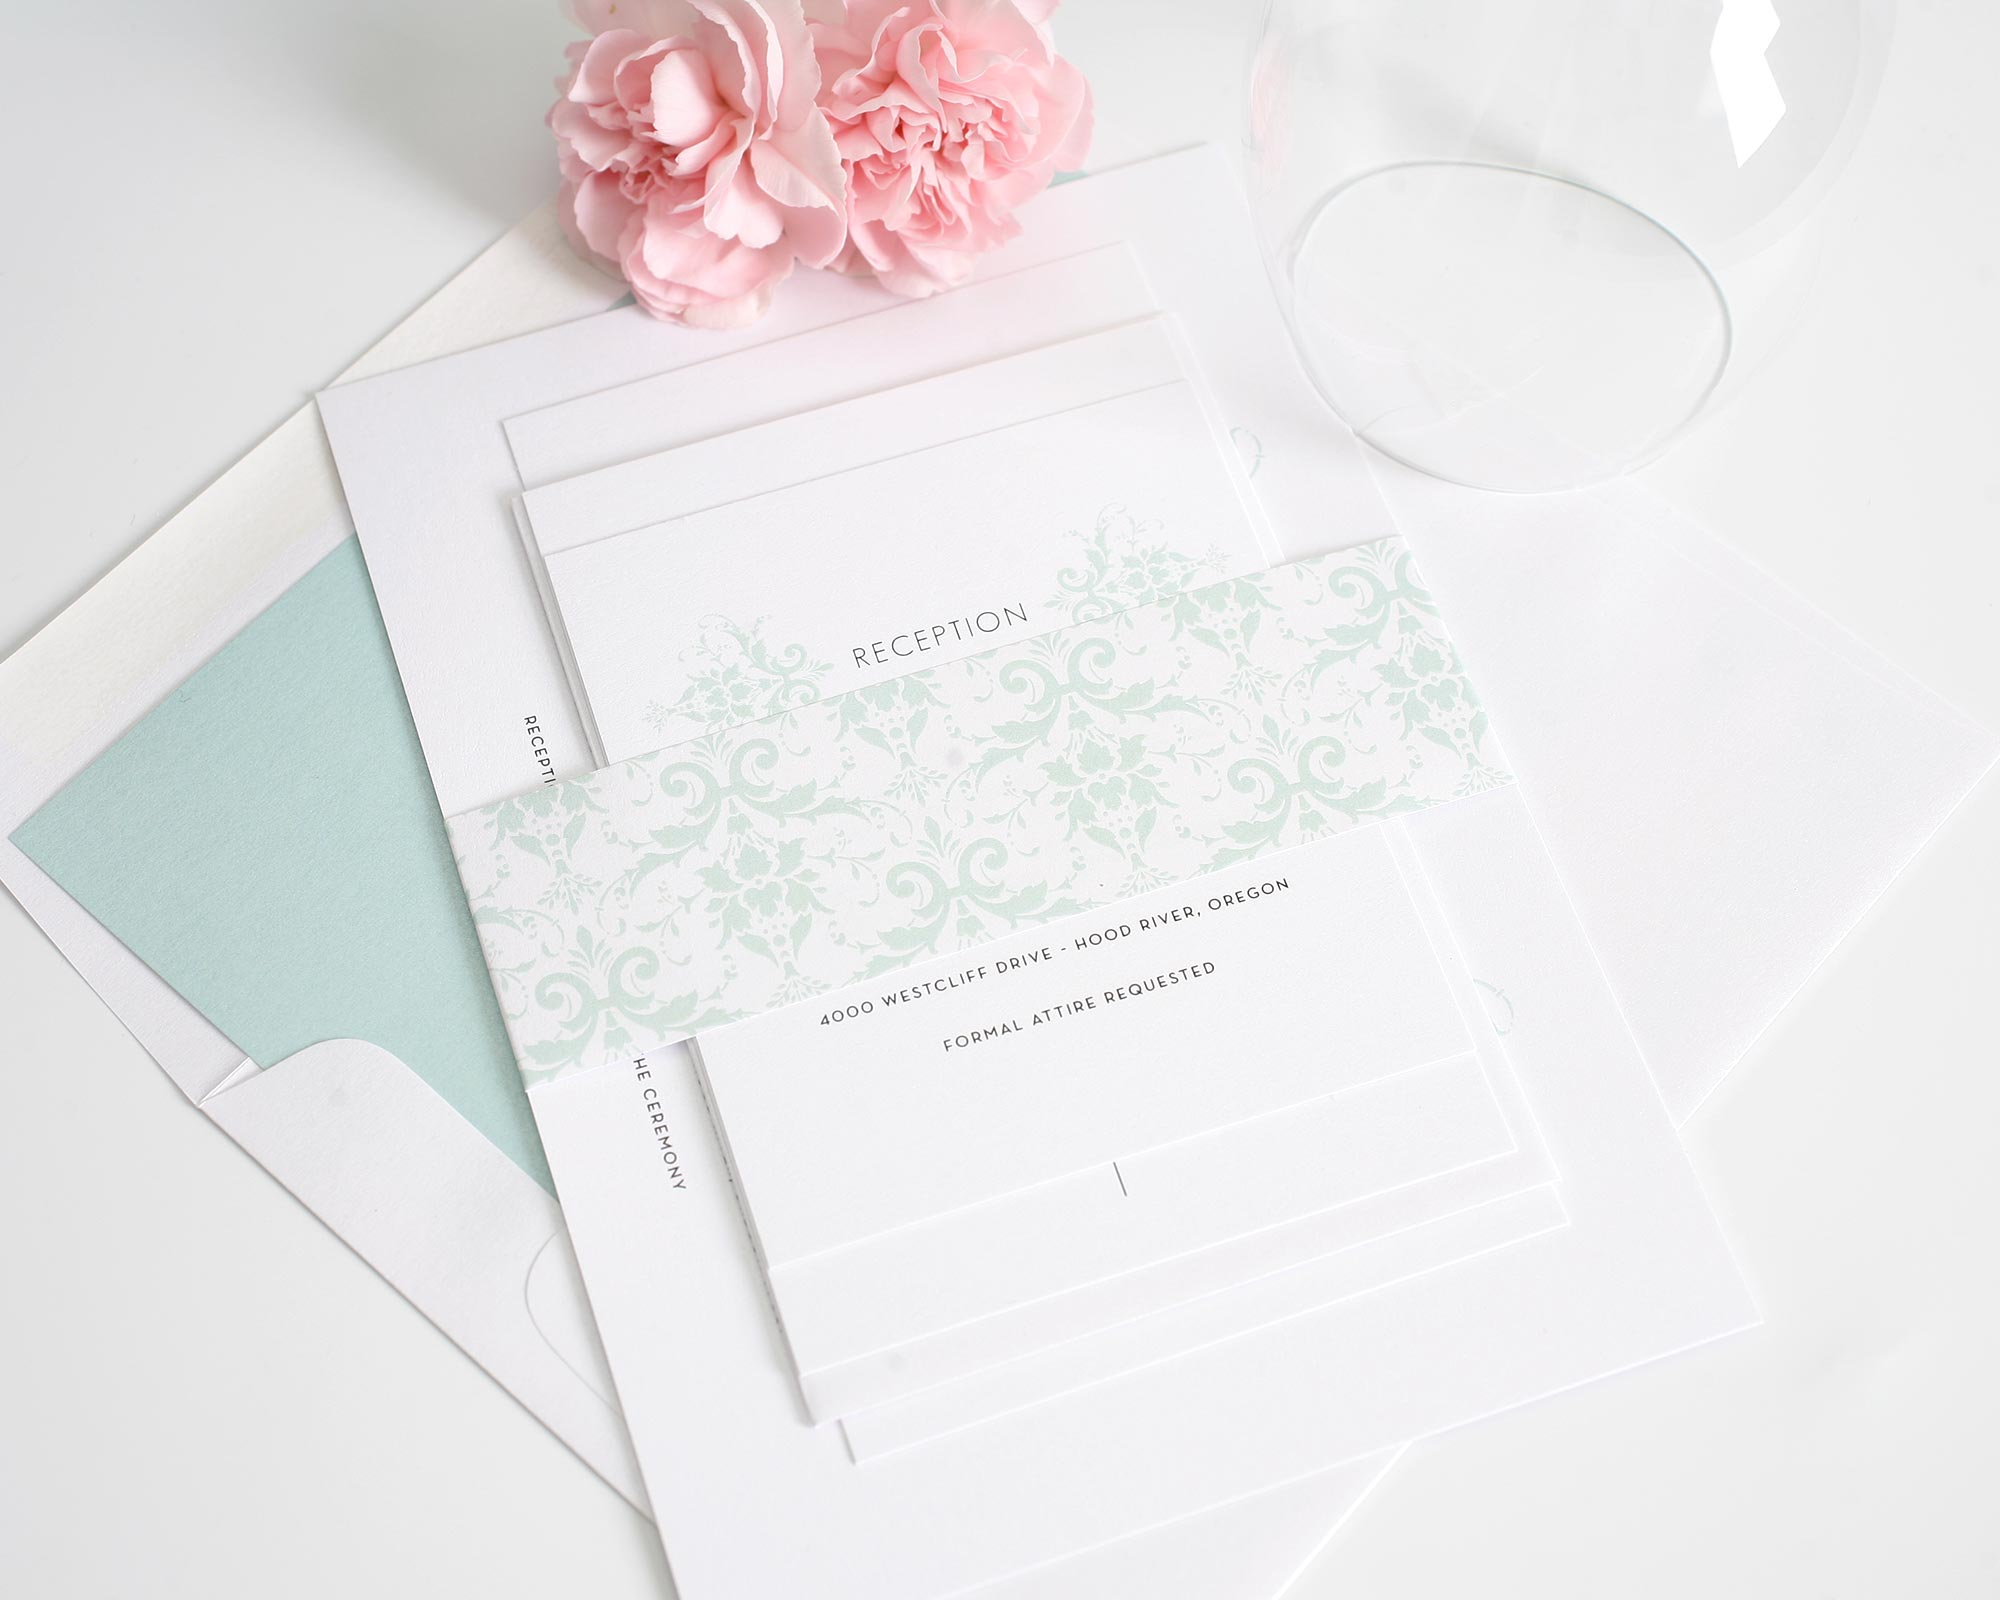 elegant damask wedding invitations in mint green wedding invitations by shine - Damask Wedding Invitations